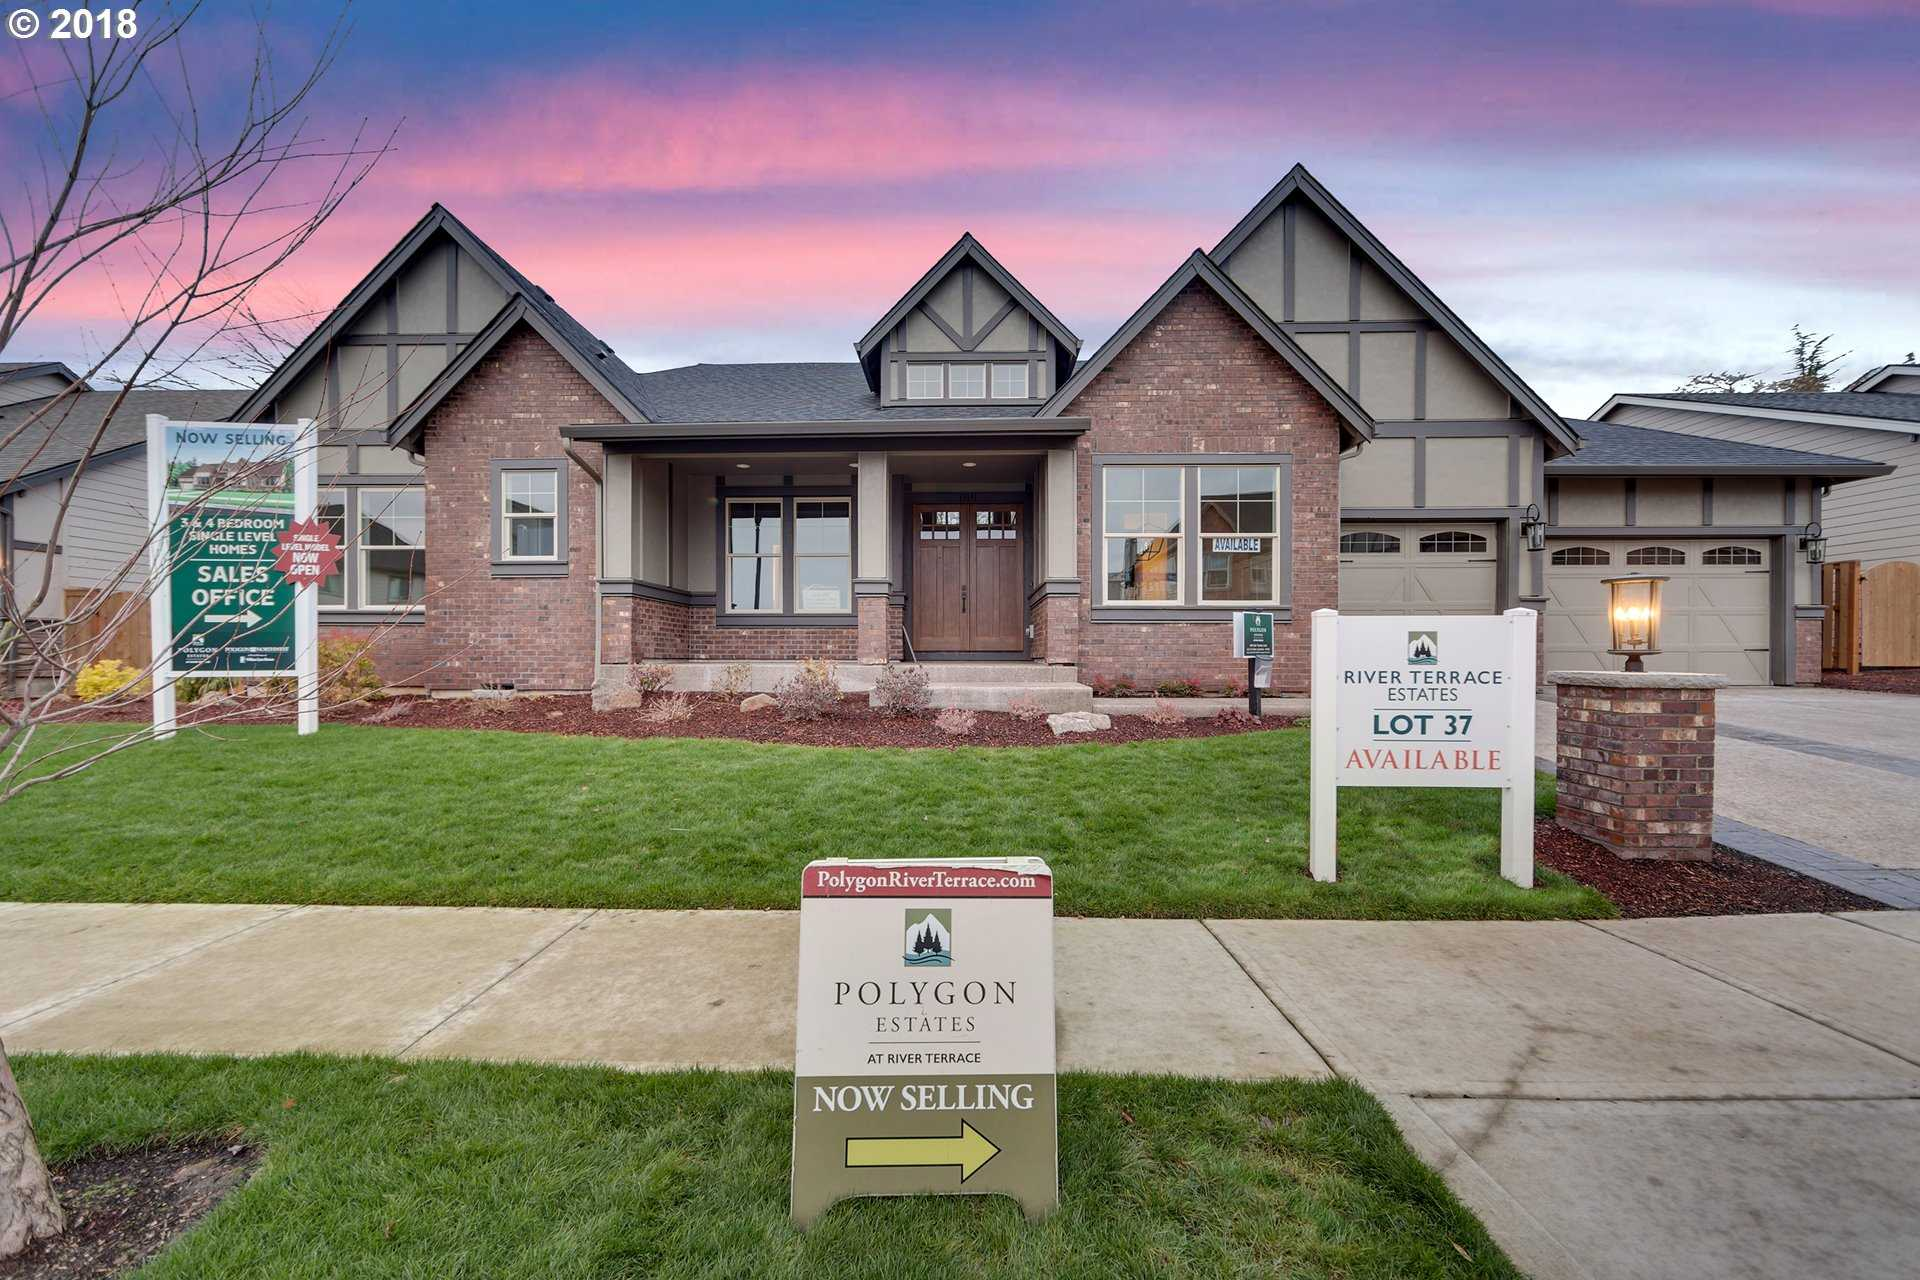 $944,990 - 4Br/4Ba -  for Sale in The Estates At River Terrace, Tigard